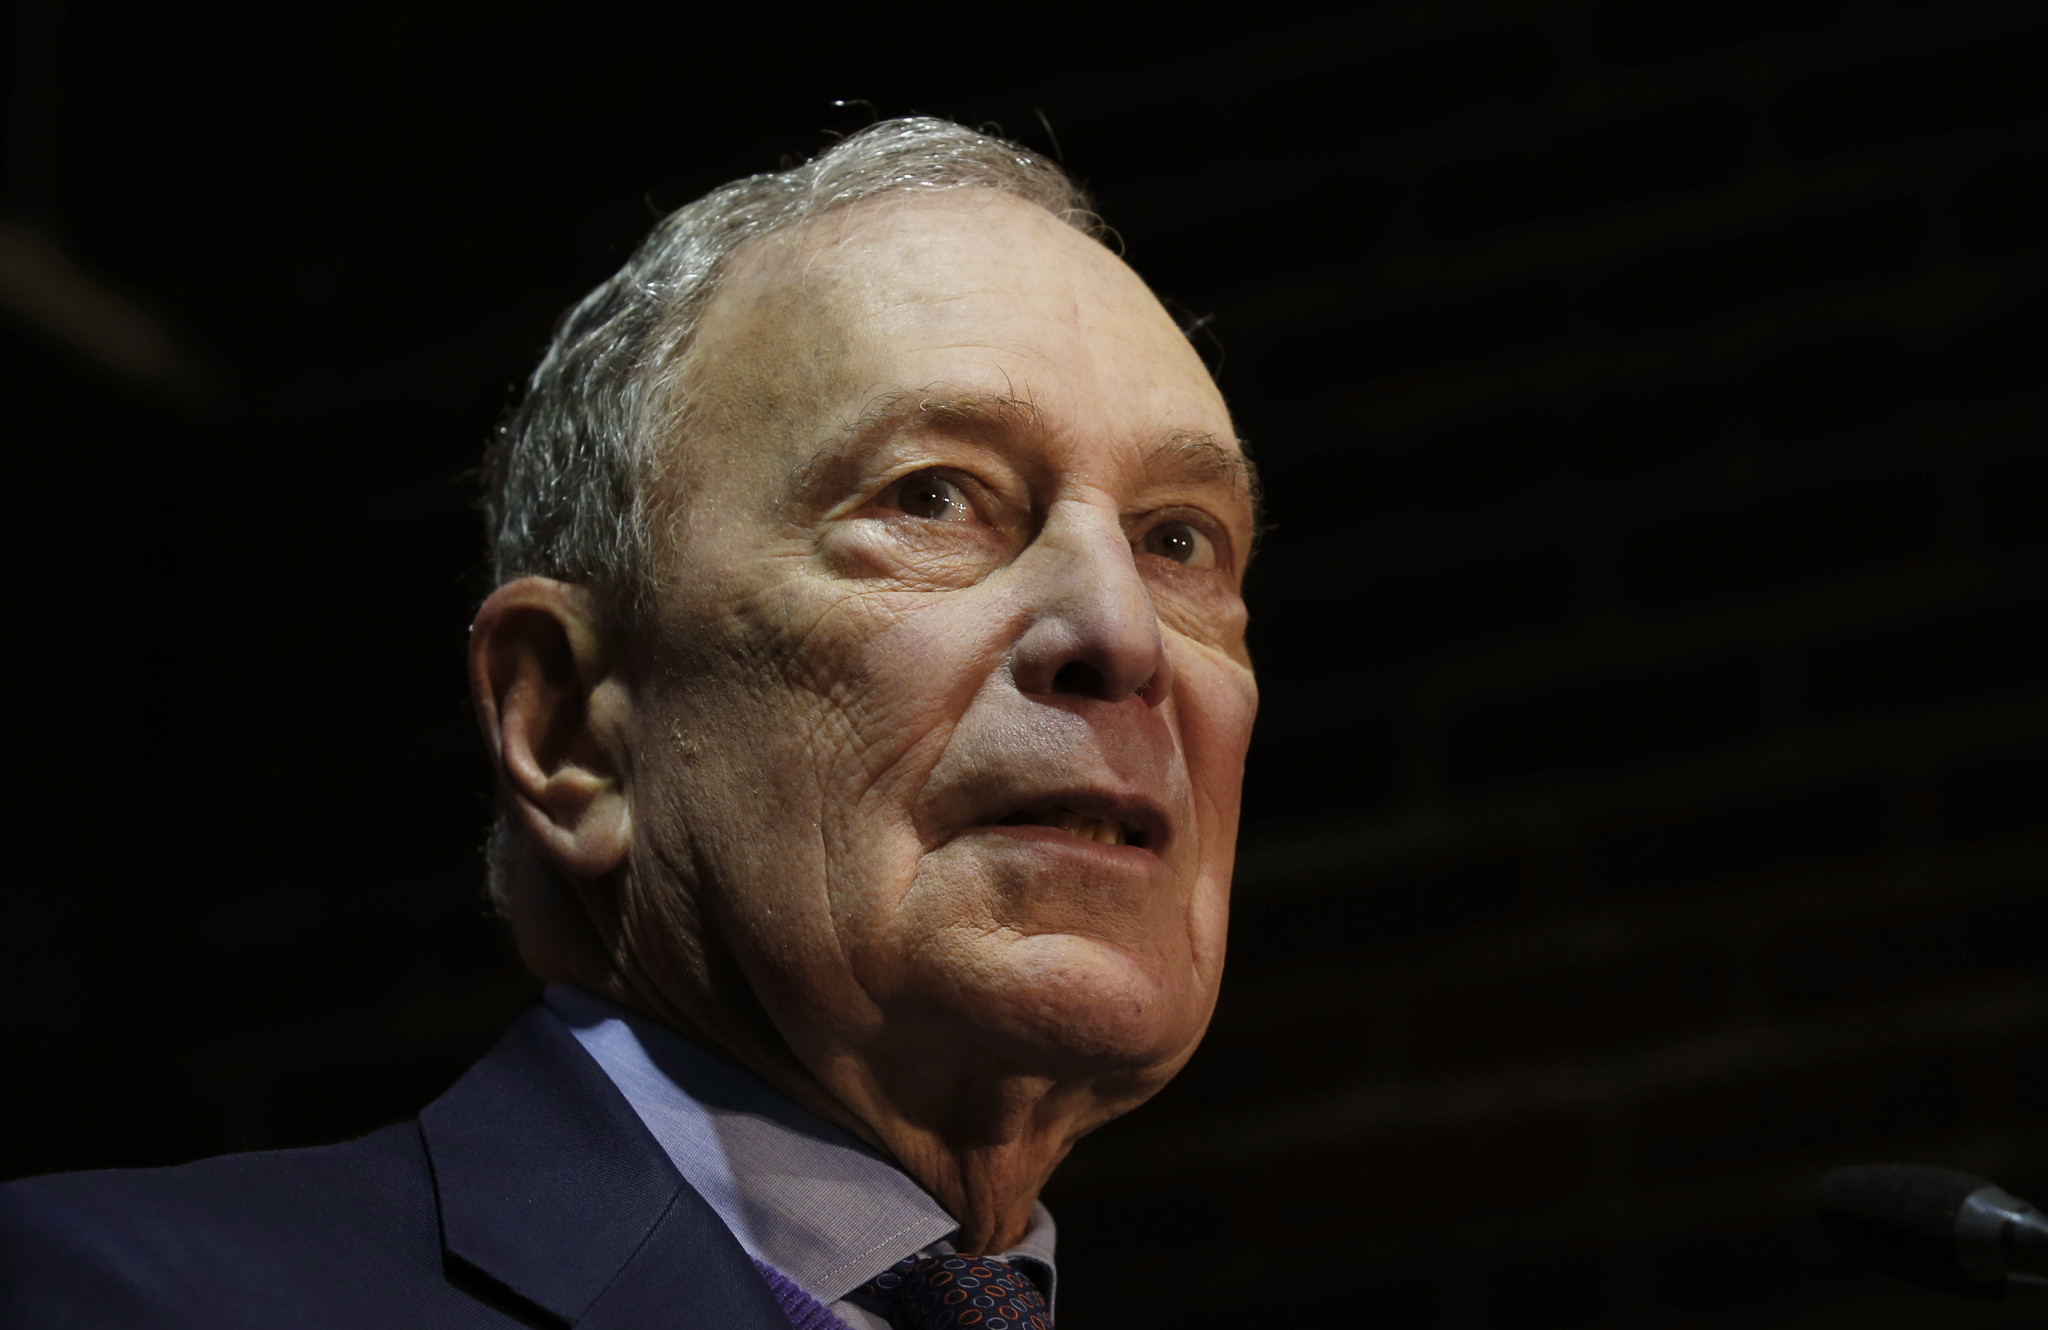 Bloomberg suggests without evidence that Bernie Sanders supporters are responsible for campaign office vandalism